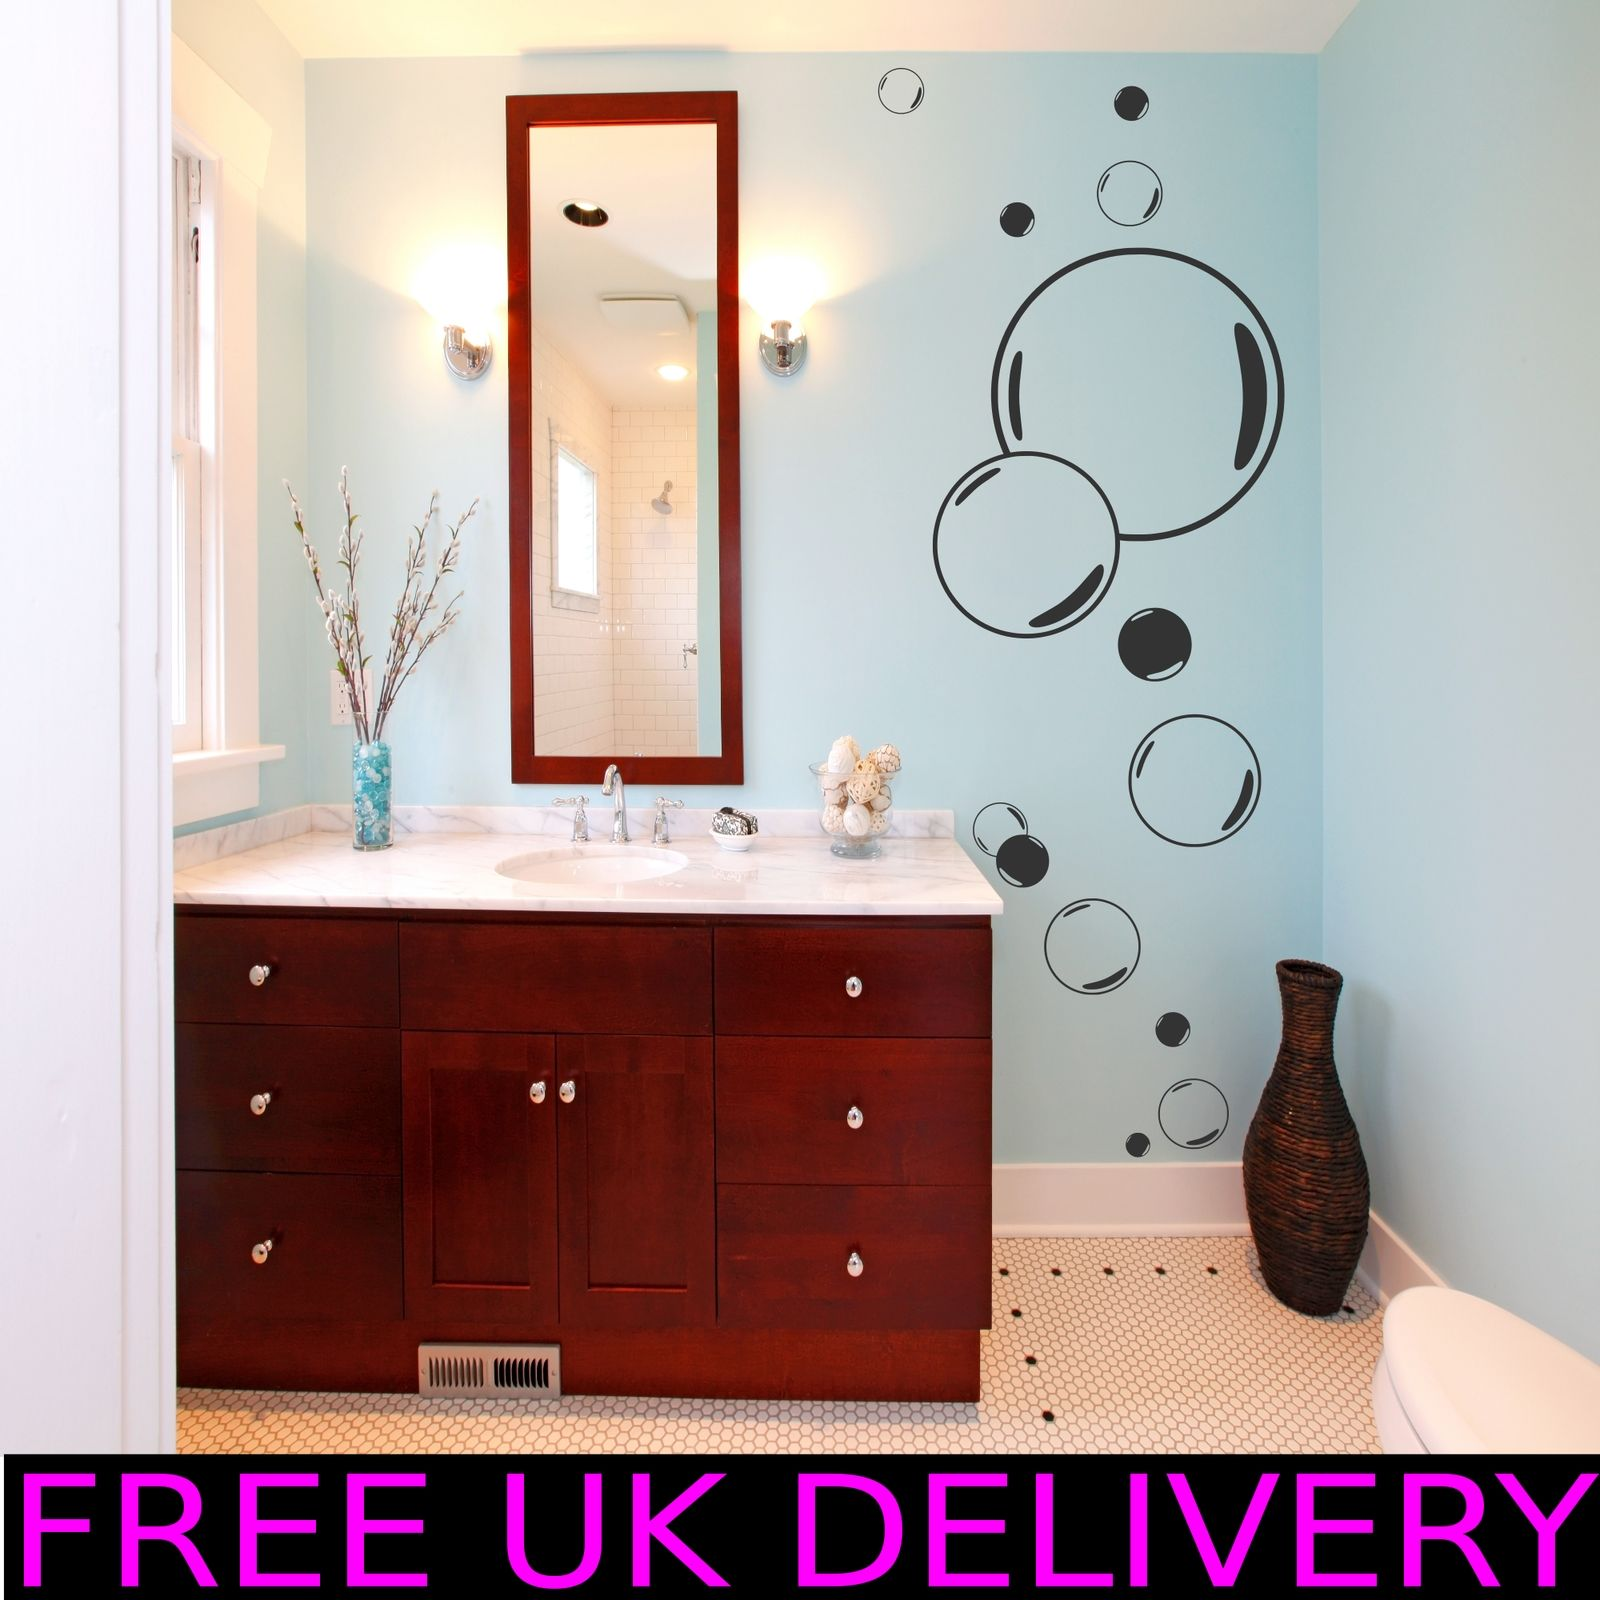 Large Big Bubbles Bathroom Wall Art Stickers Decal